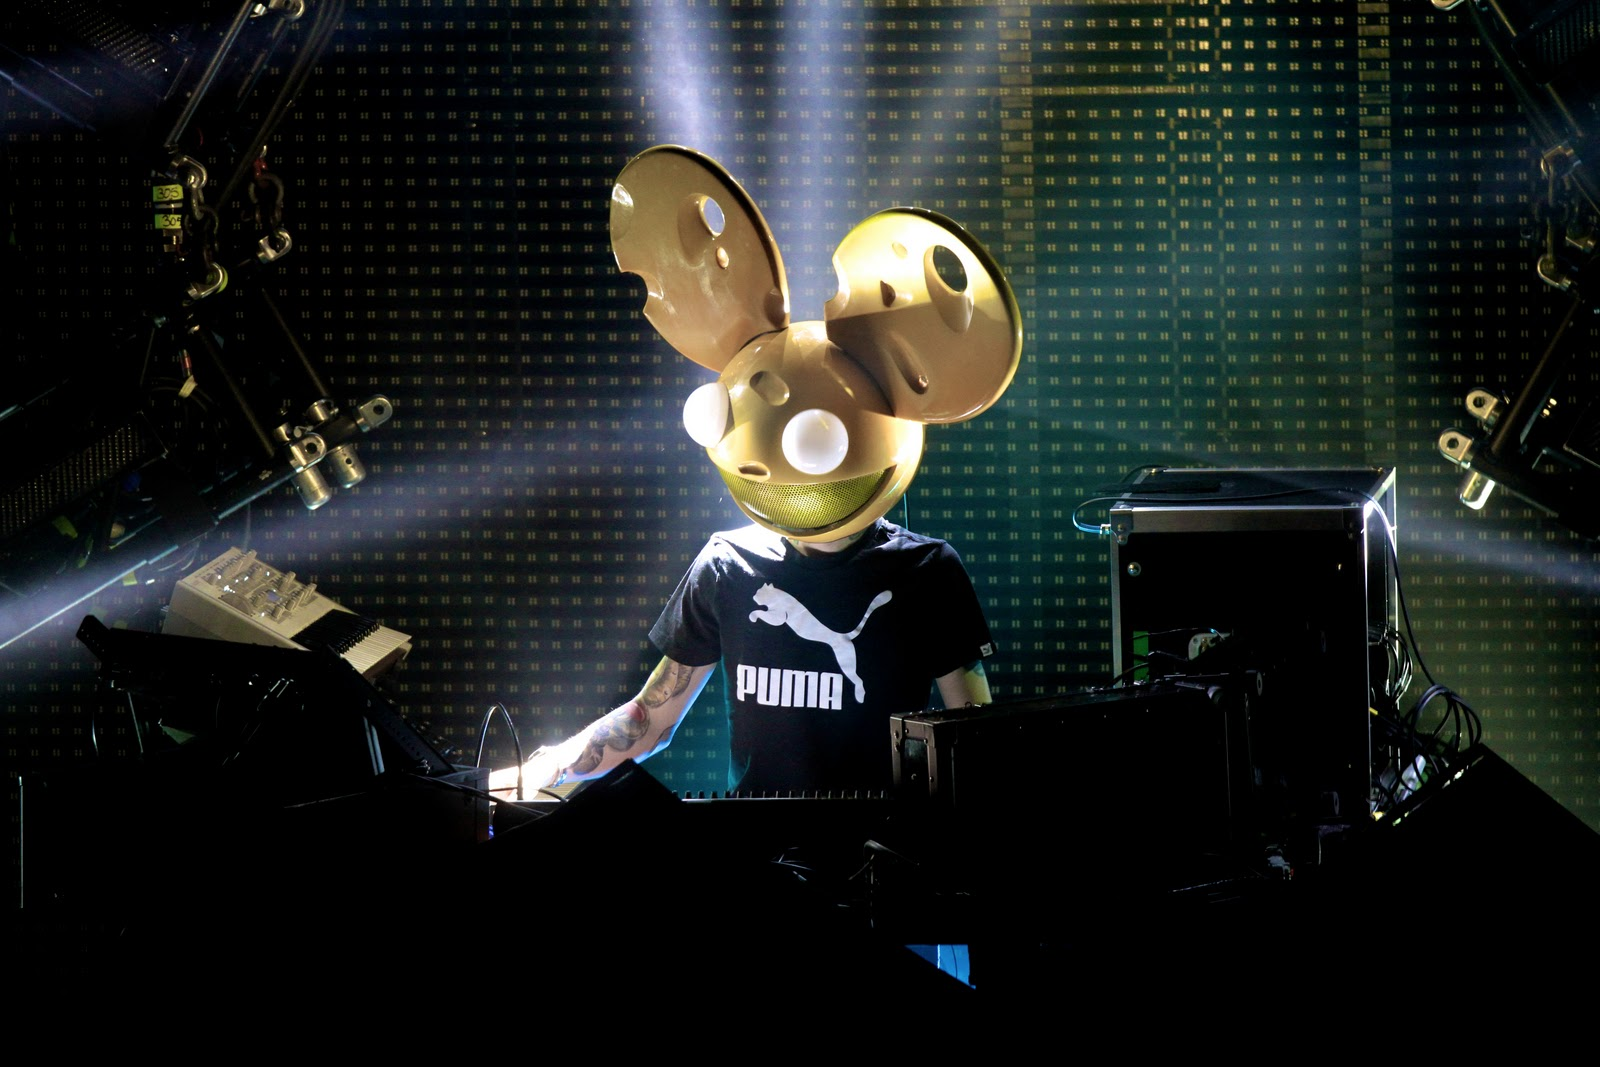 deadmau5 banned from twitch 3